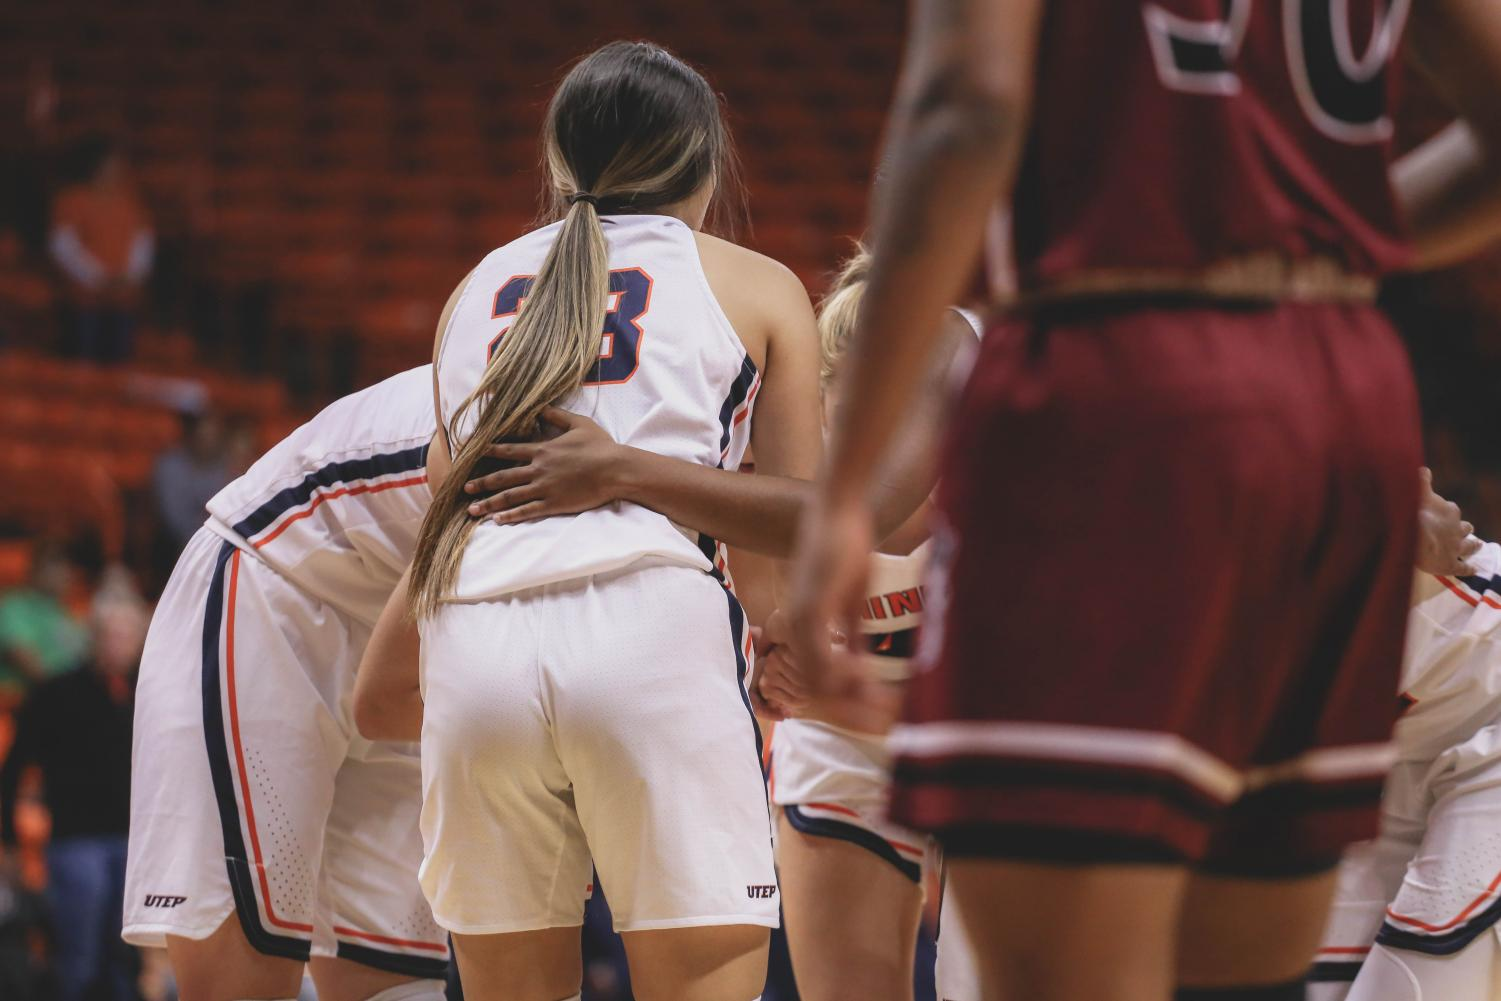 The+Lady+Miners+discuss+the+game+plan+during+a+media+time+out+at+a+game+against+the+NMSU+Aggies+on+Saturday%2C+Nov.+17.+